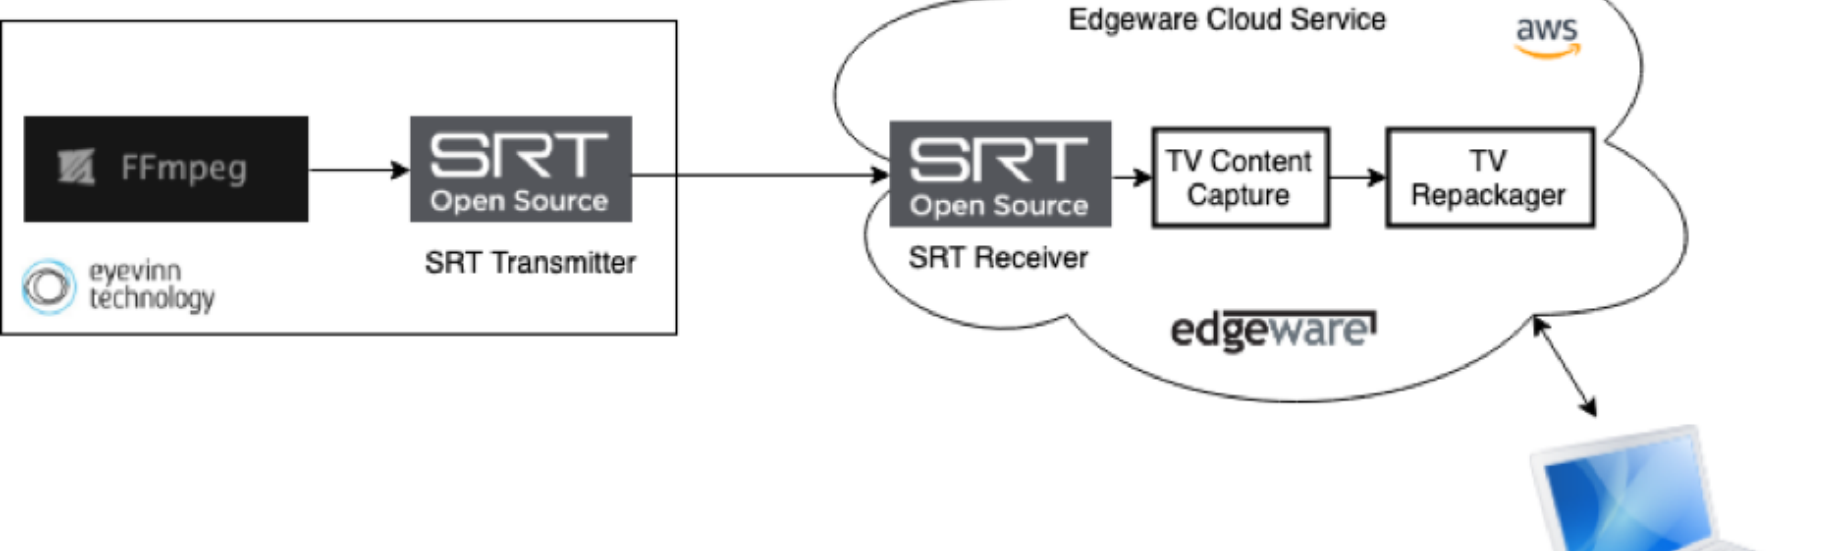 Testing of SRT and Edgeware Cloud Service - Eyevinn